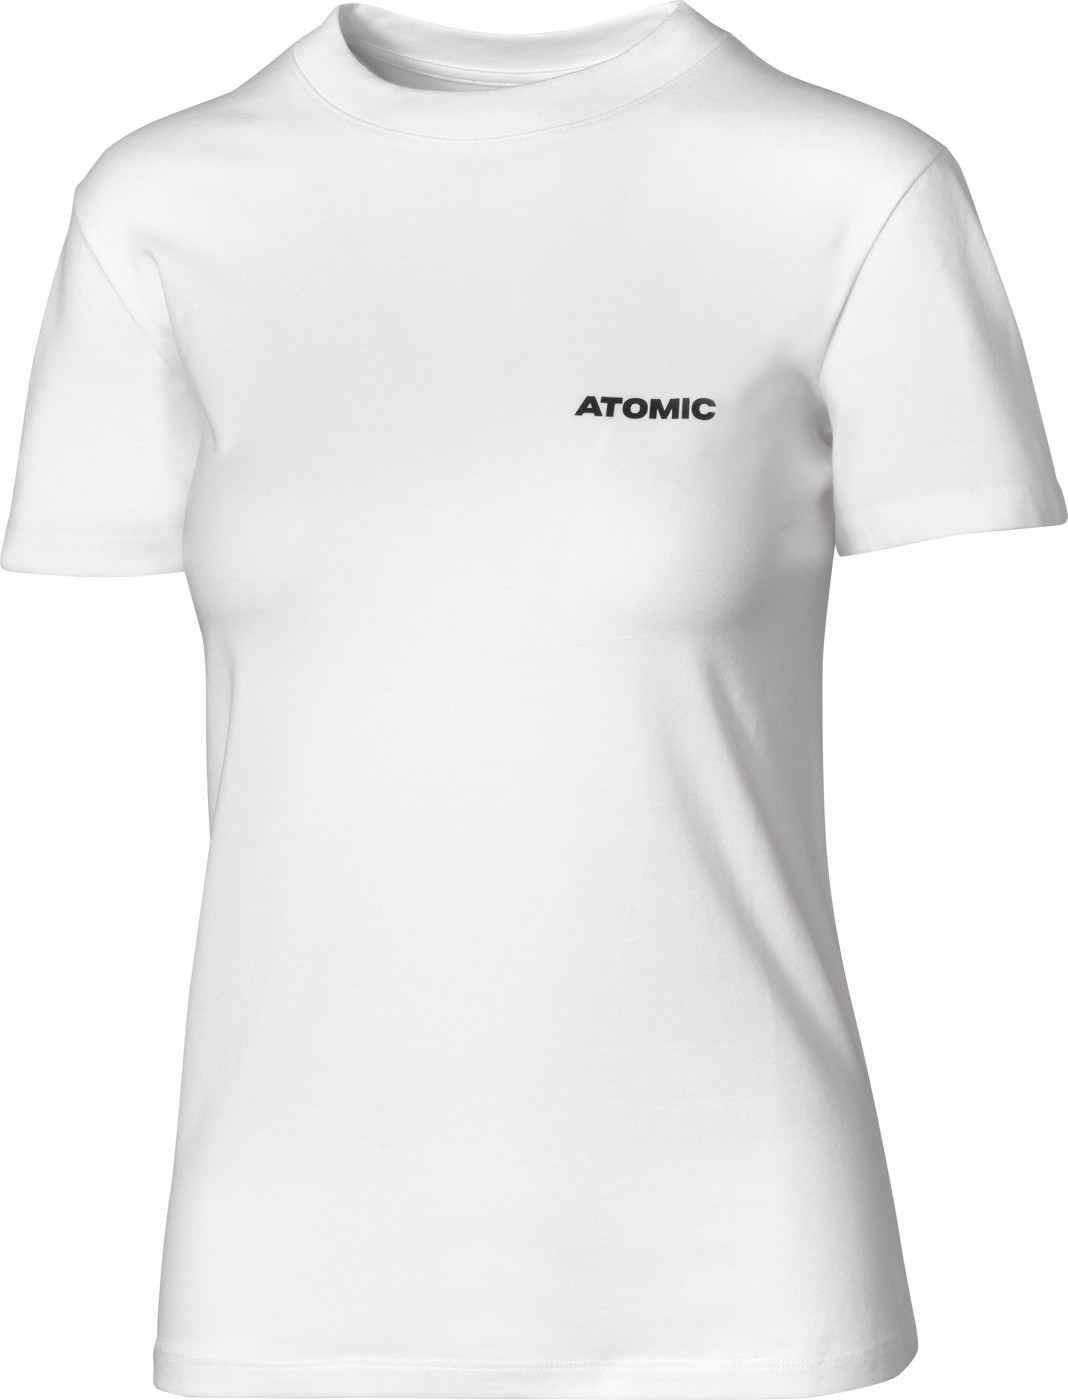 ATOMIC W ALPS T-SHIRT White XL - Damen